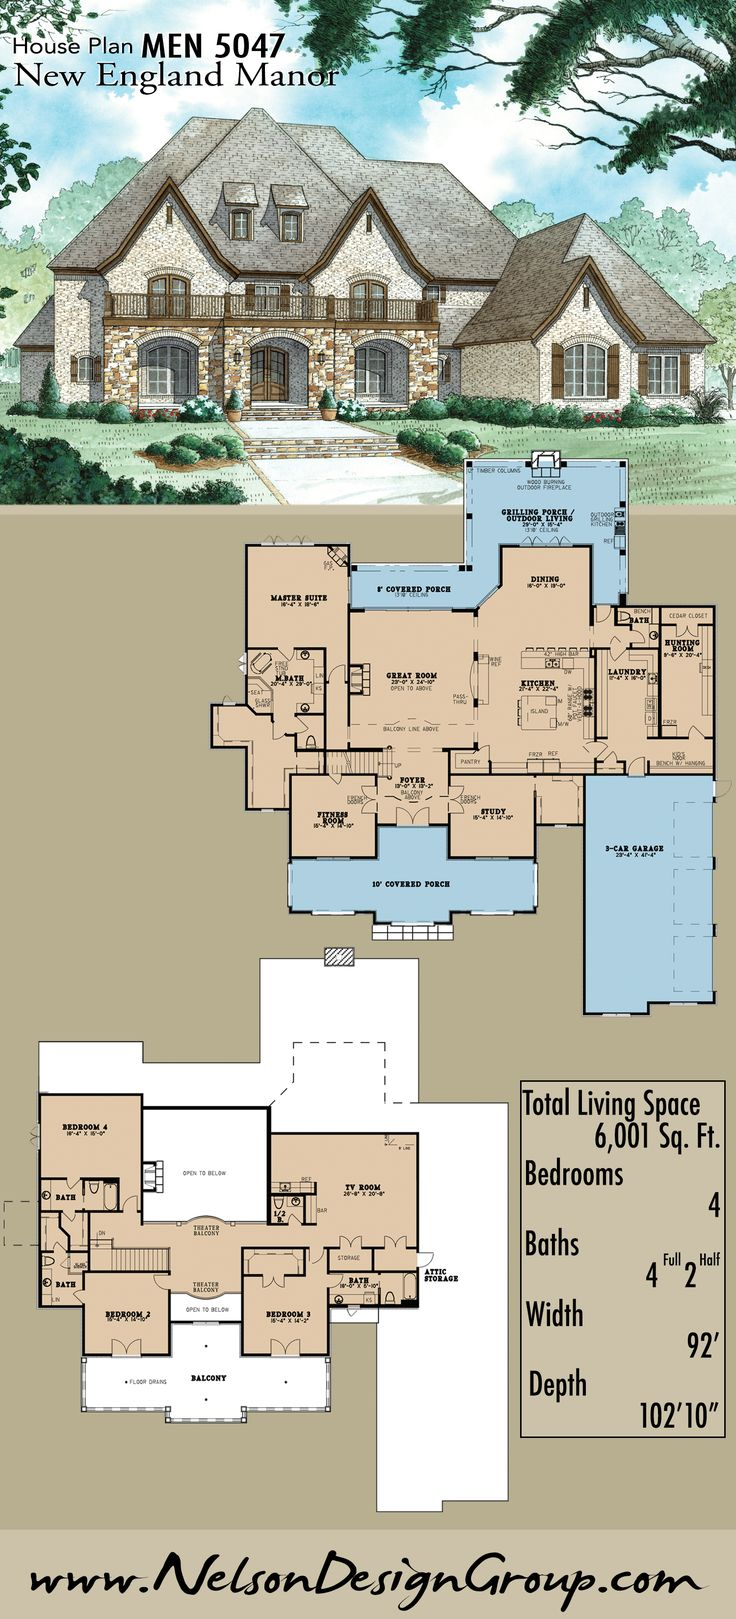 houses house home homes homeplans homeplan houseplan